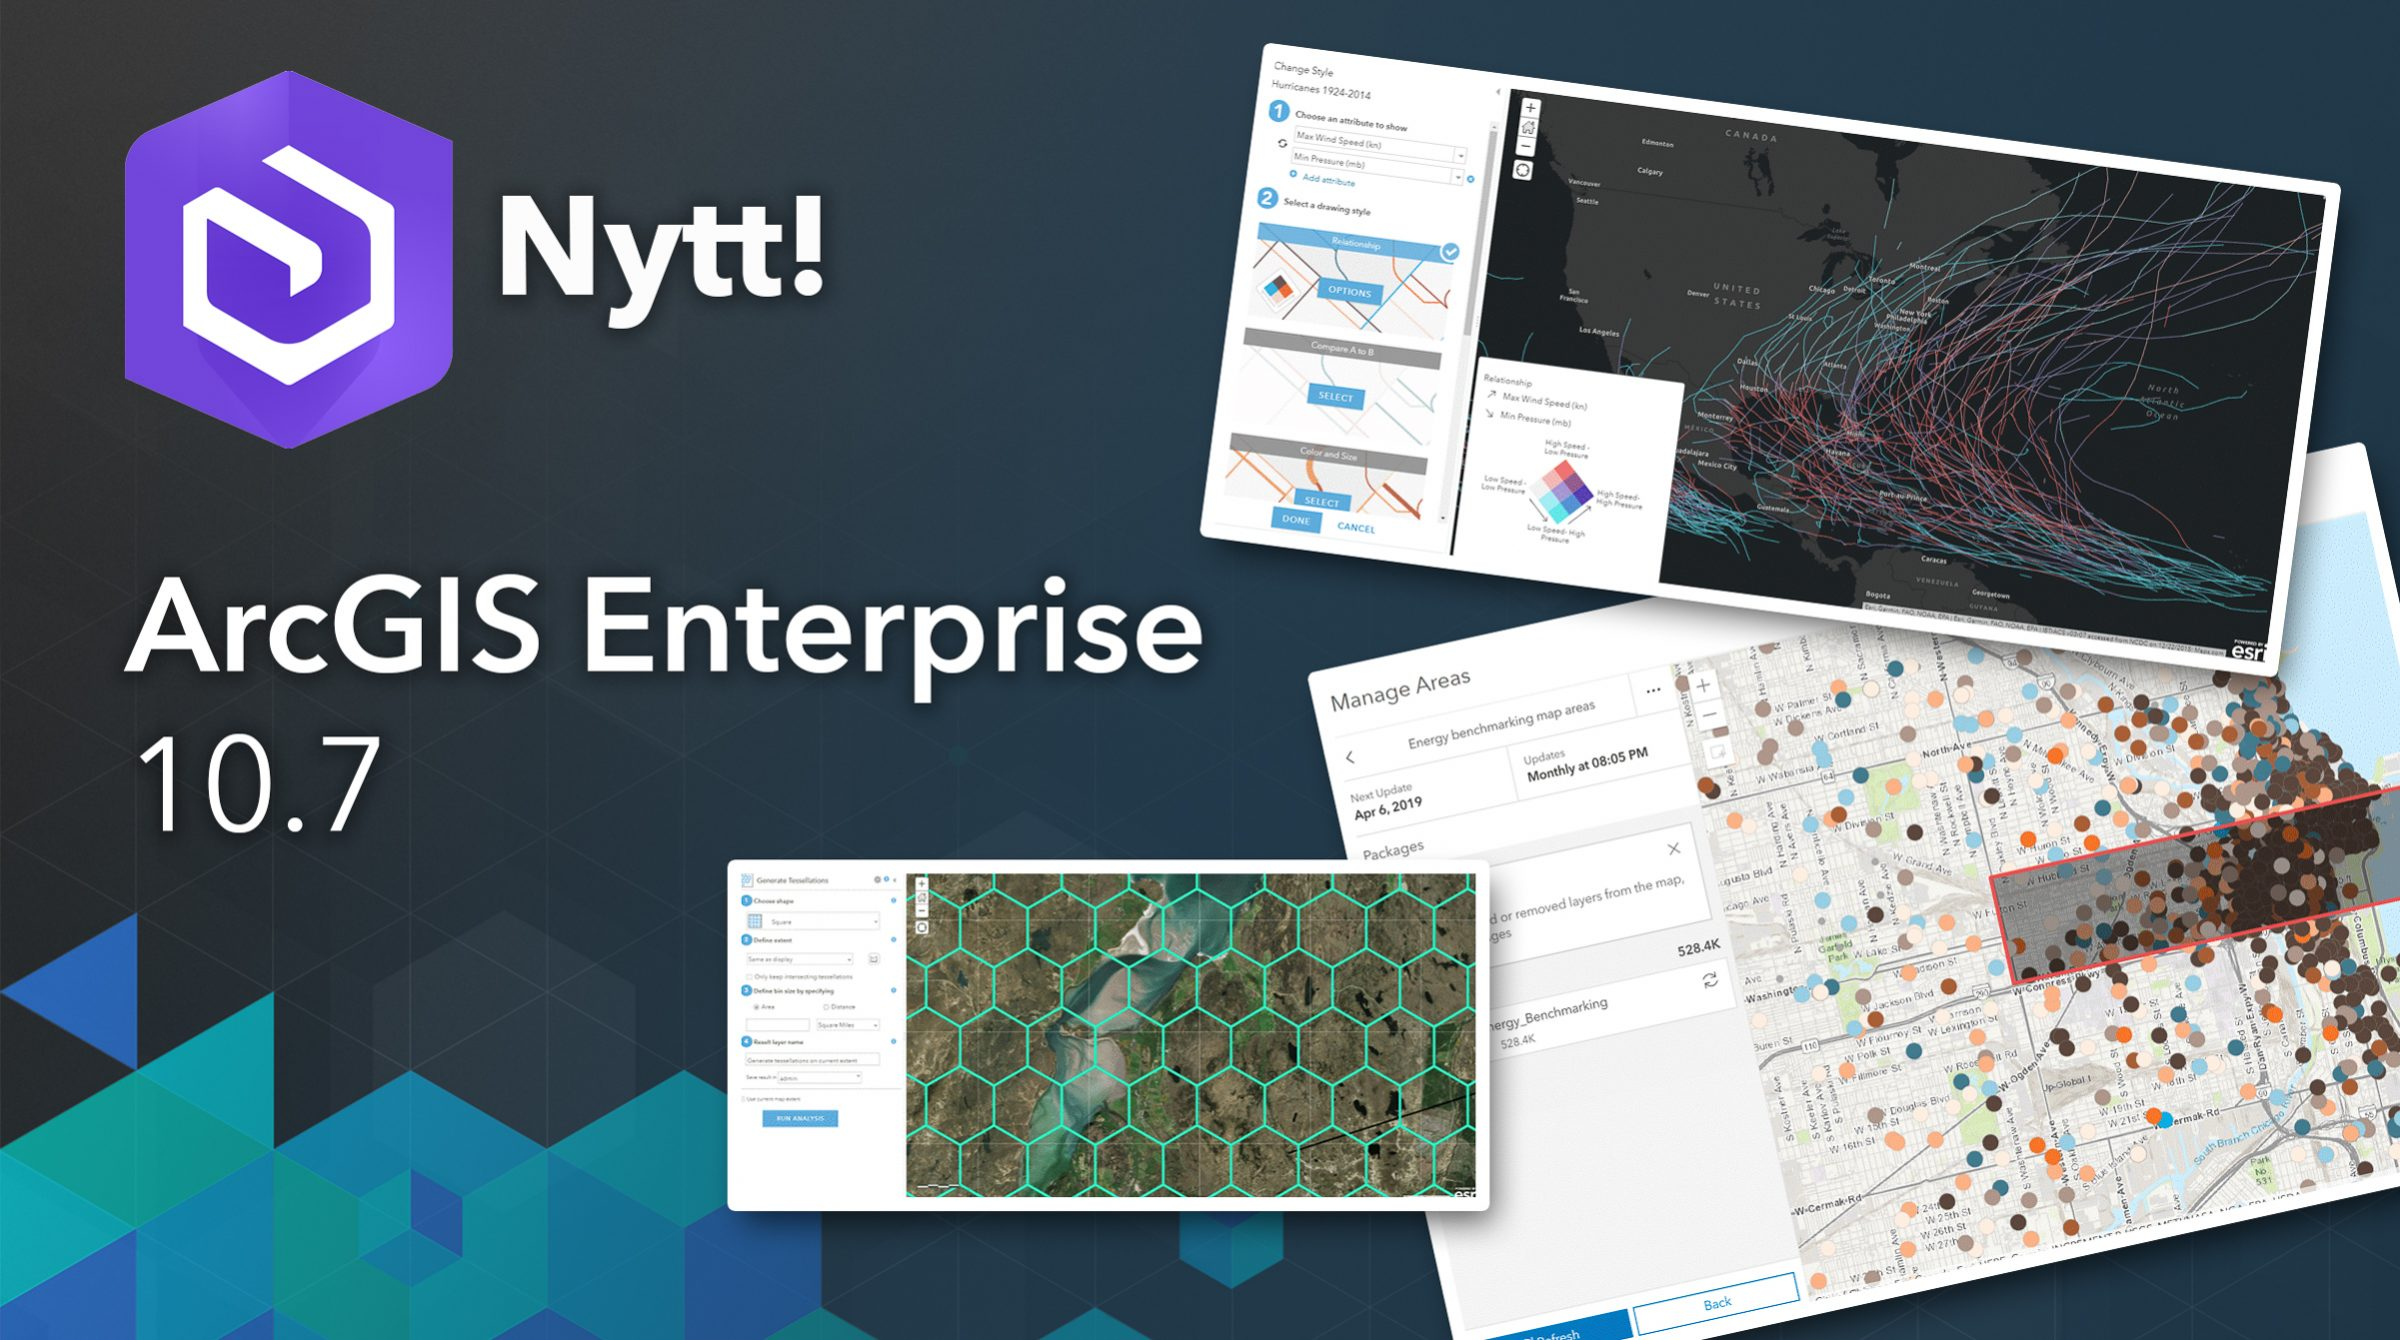 Nytt i ArcGIS Enterprise